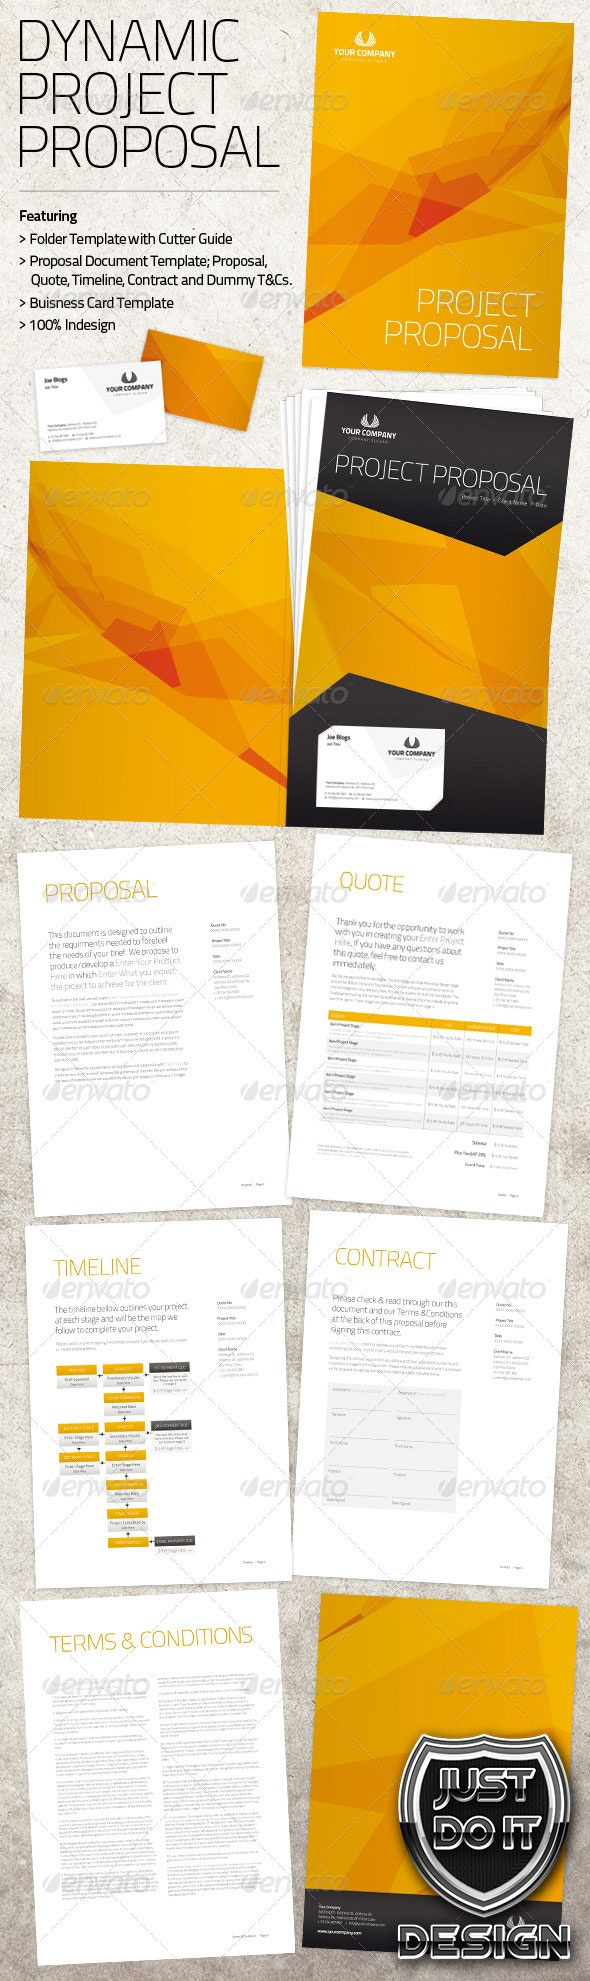 The folder is supplied with a cutter guide set-up ready for press. The Proposal document is full of dummy text, ready to add your company name and project information or write your own and style to match the Dynamic design.    INDESIGN Format, Jpg, Pdf, Documentation.- $6.99  Finishing & Printed Lots Pricing Upon Request